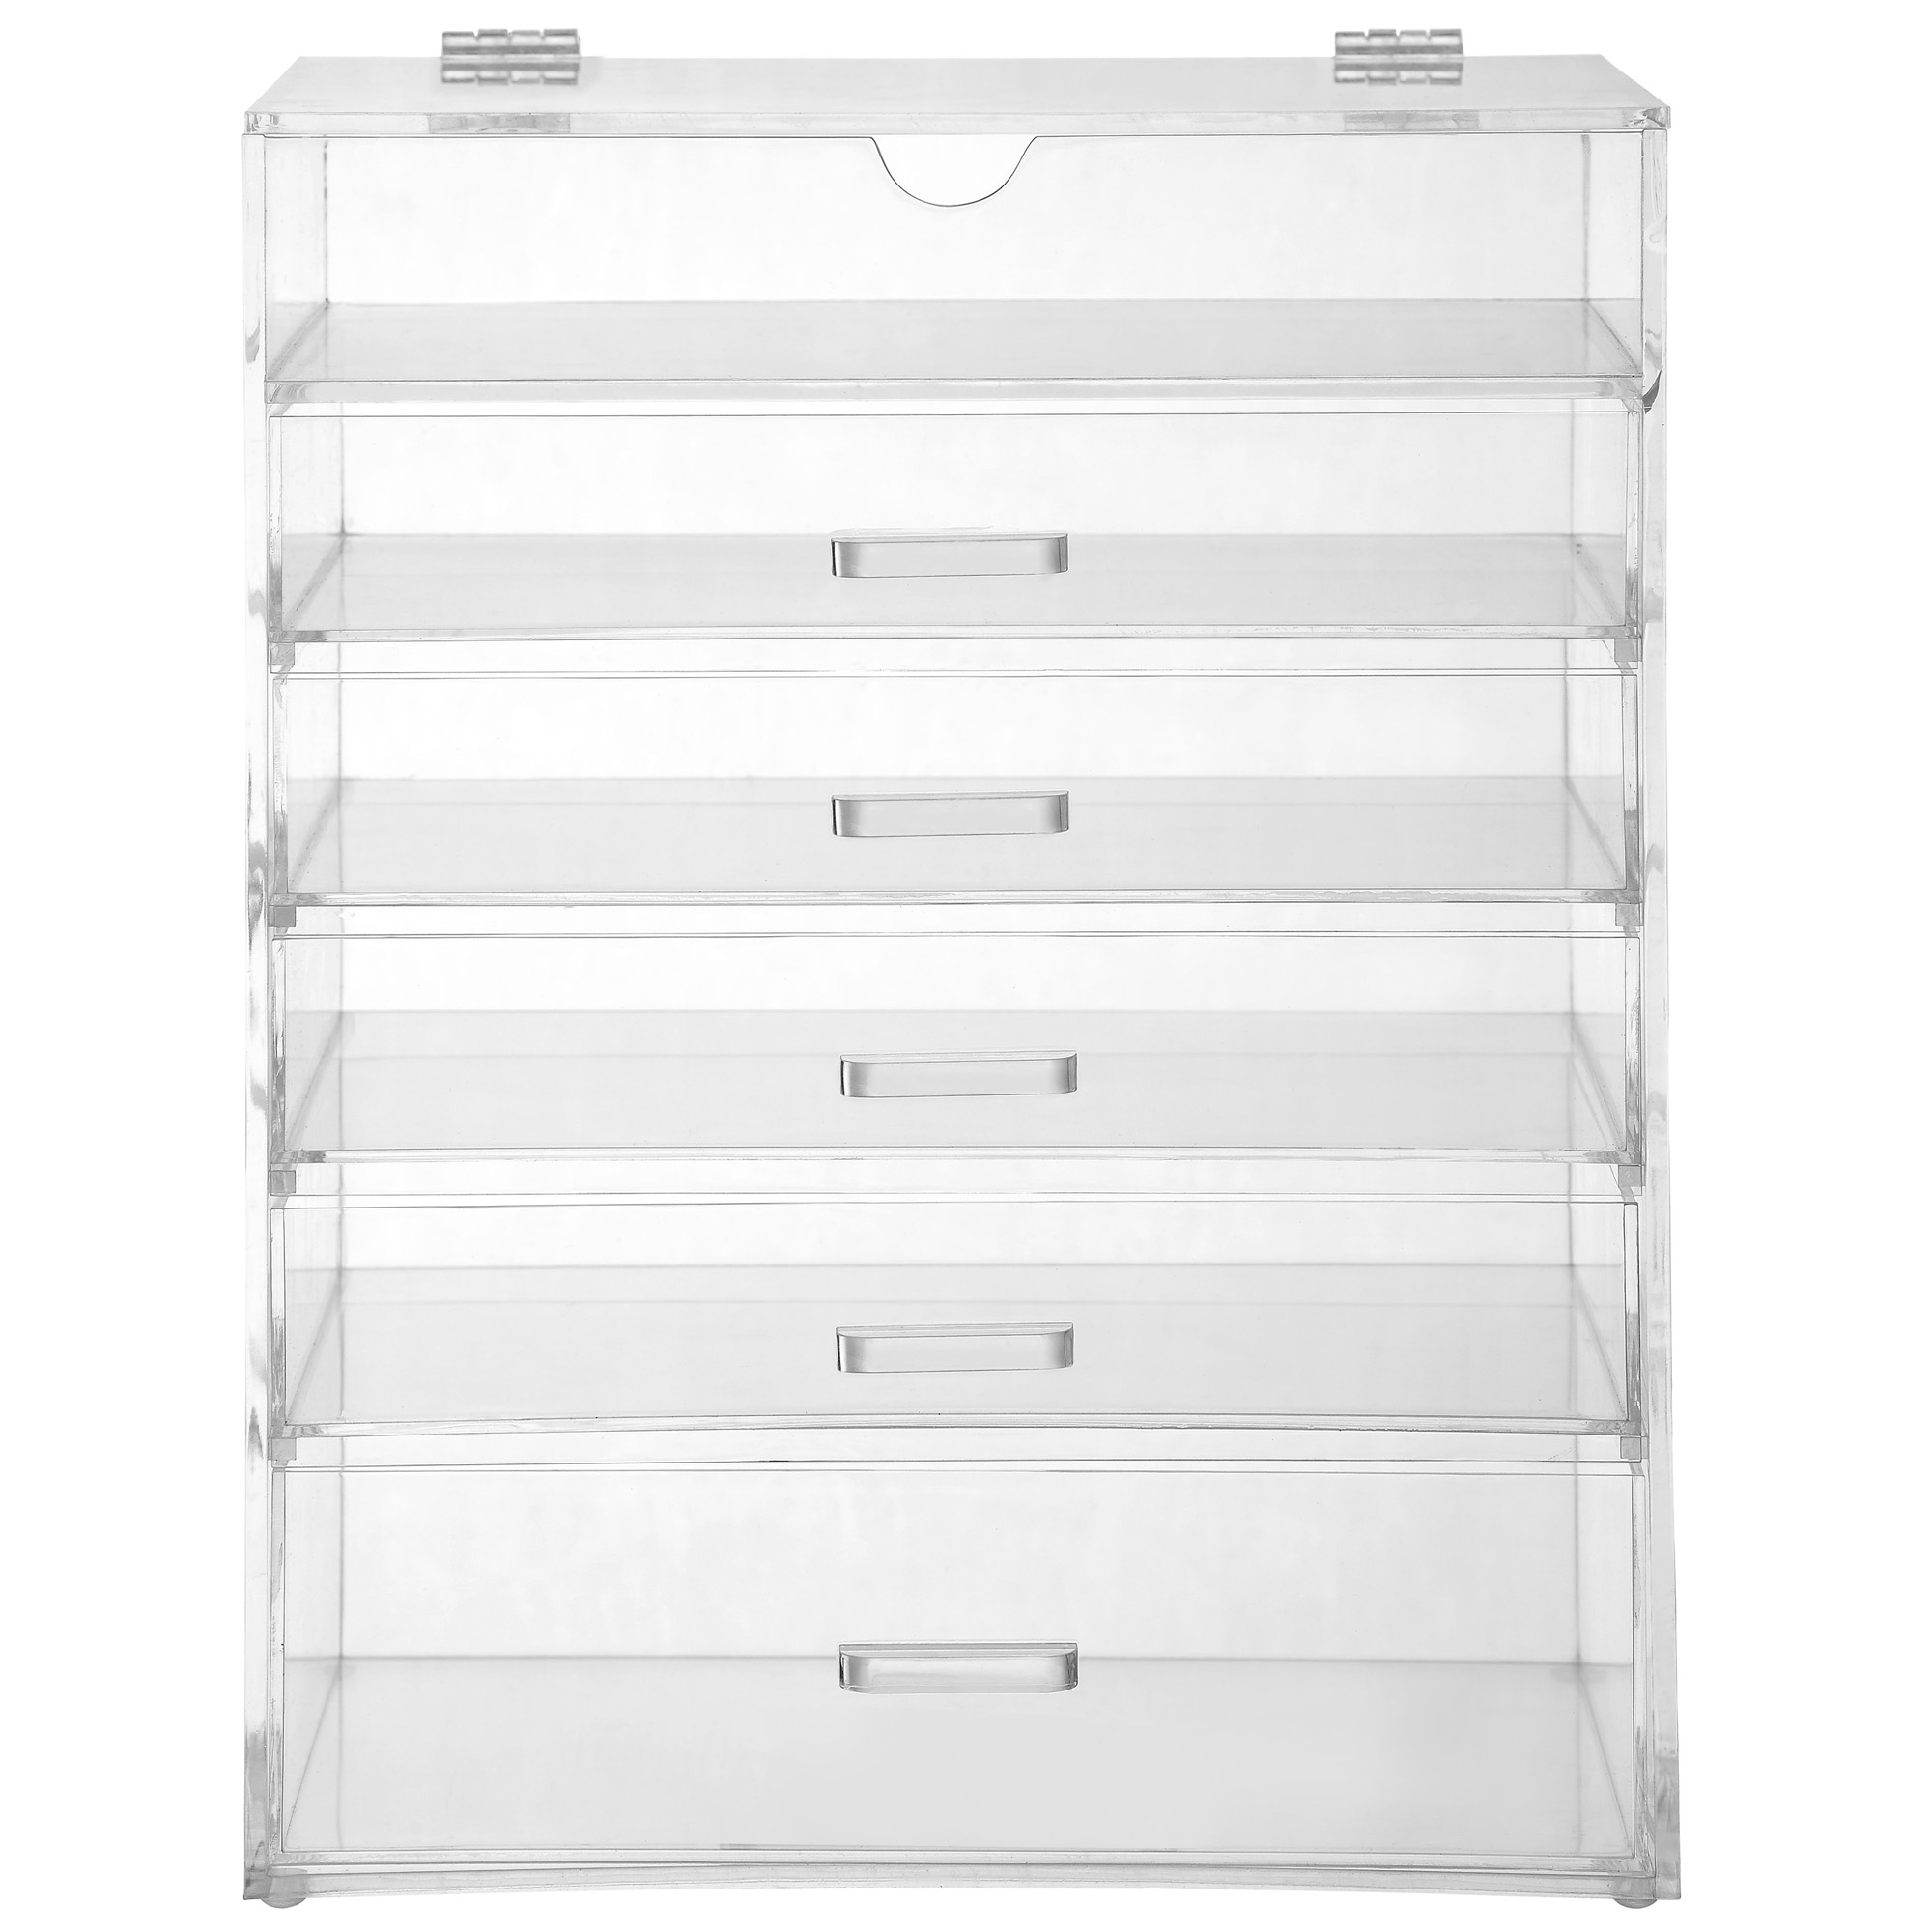 Sentinel Beautify 6 Tier Clear Acrylic Cosmetic Makeup Organiser Storage  Case   5 Drawers